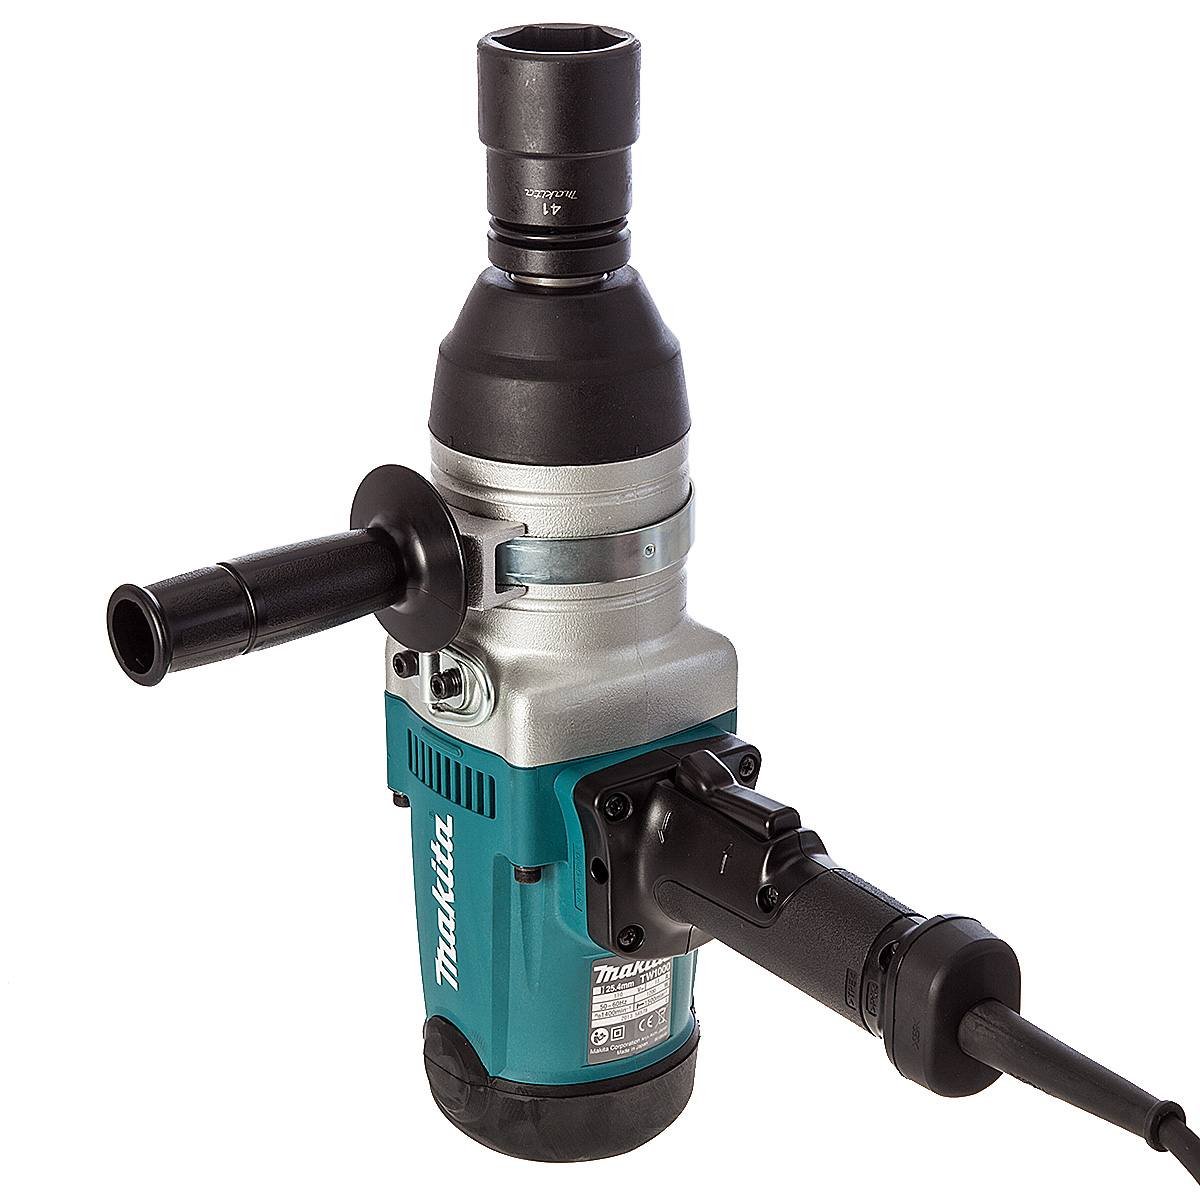 Makita-TW1000-Impact-Wrench-1-inch–25mm-Square-Drive-110V-4